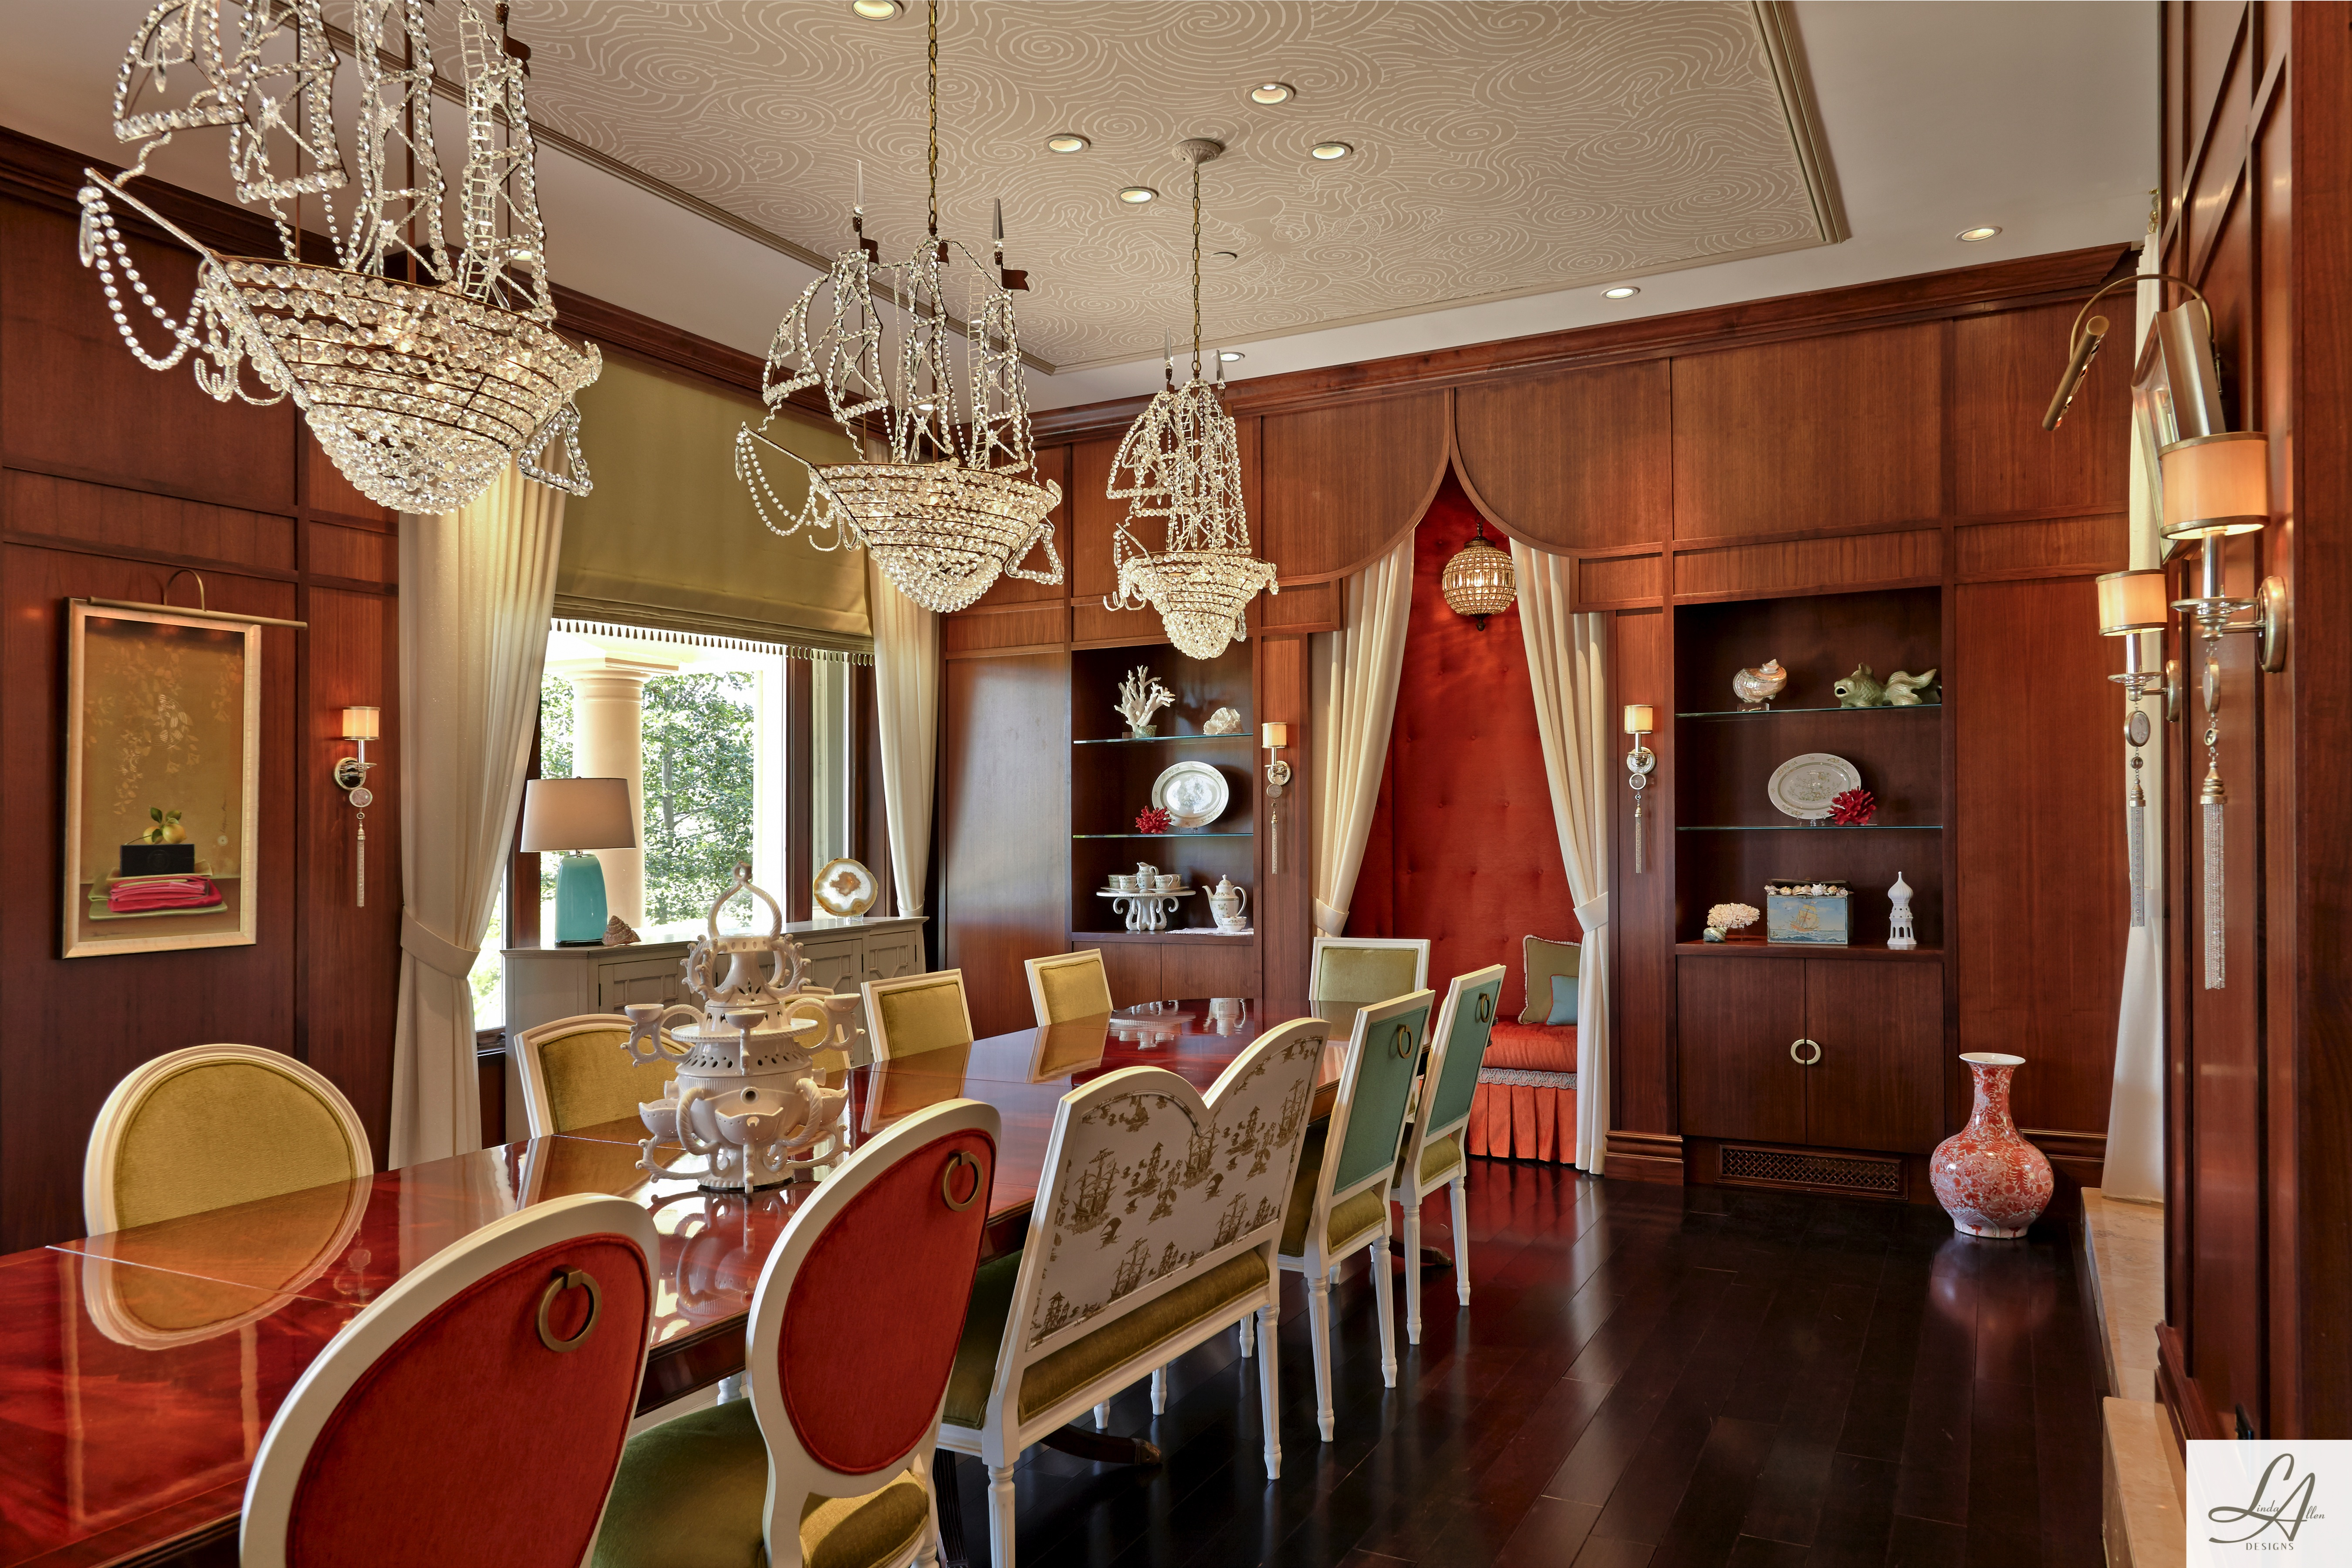 Creative Whimsical Dining Room